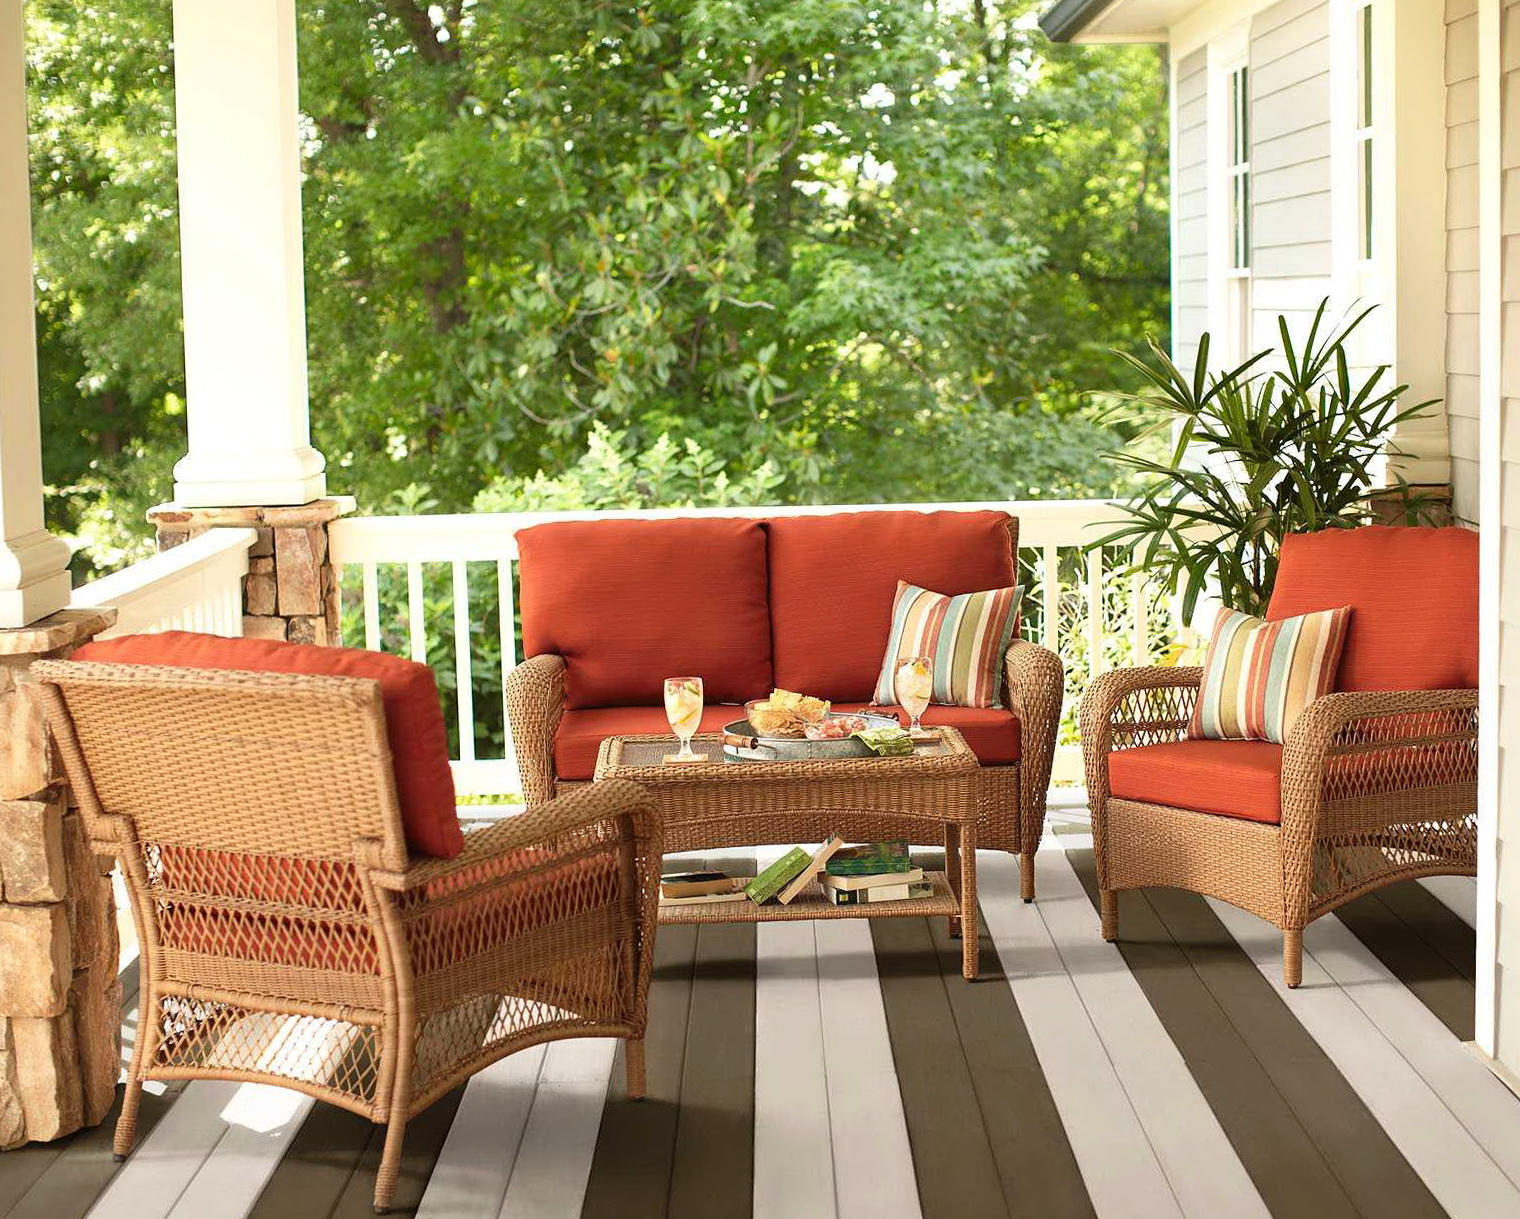 Home Depot Deck Coatings For Wood Decks